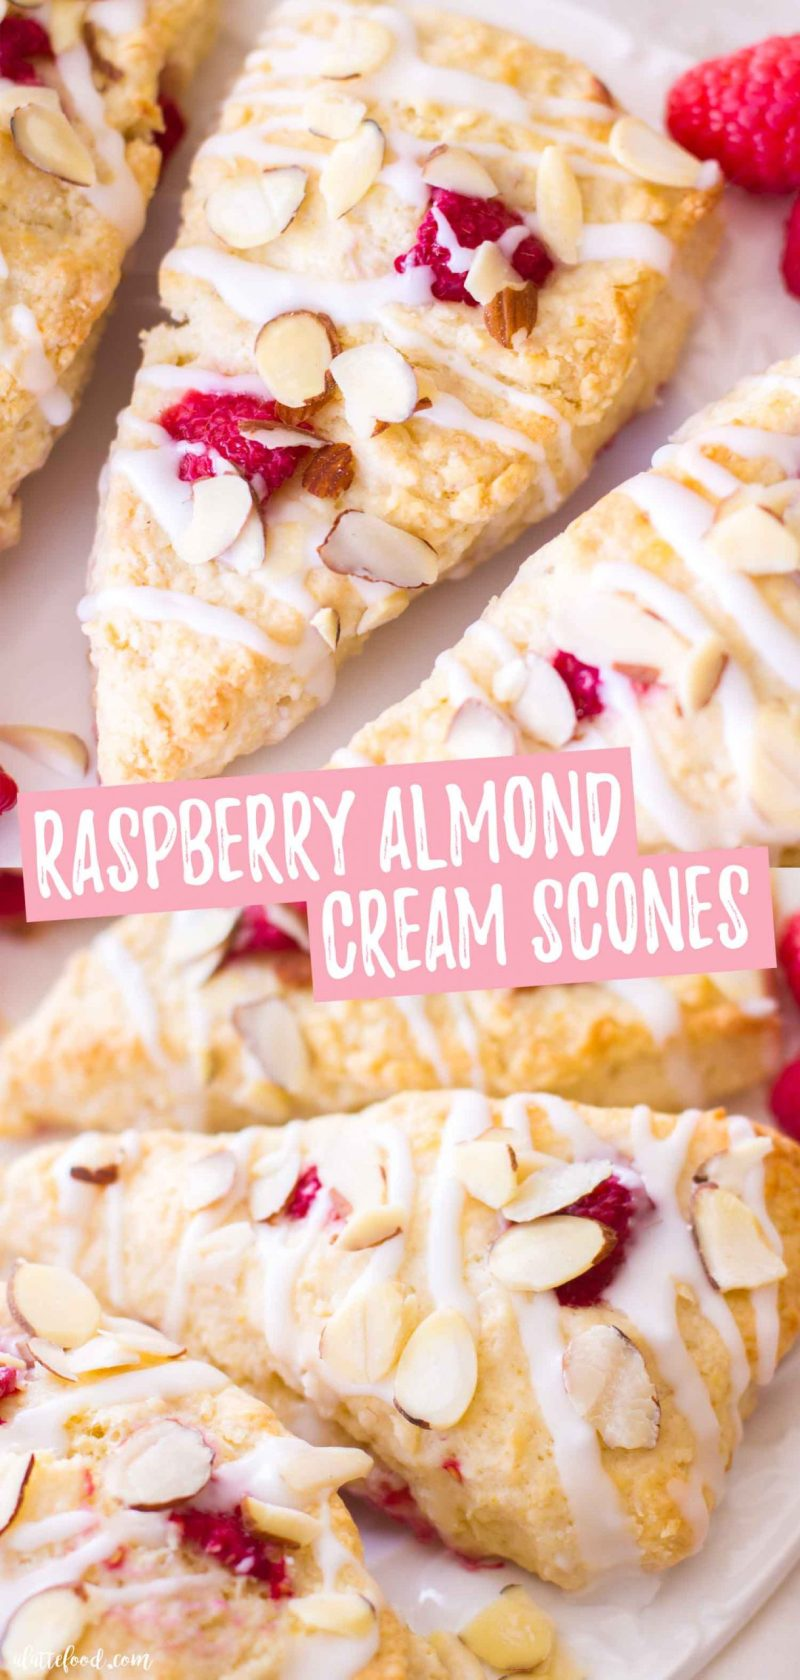 homemade raspberry almond cream scone recipe with toasted almonds